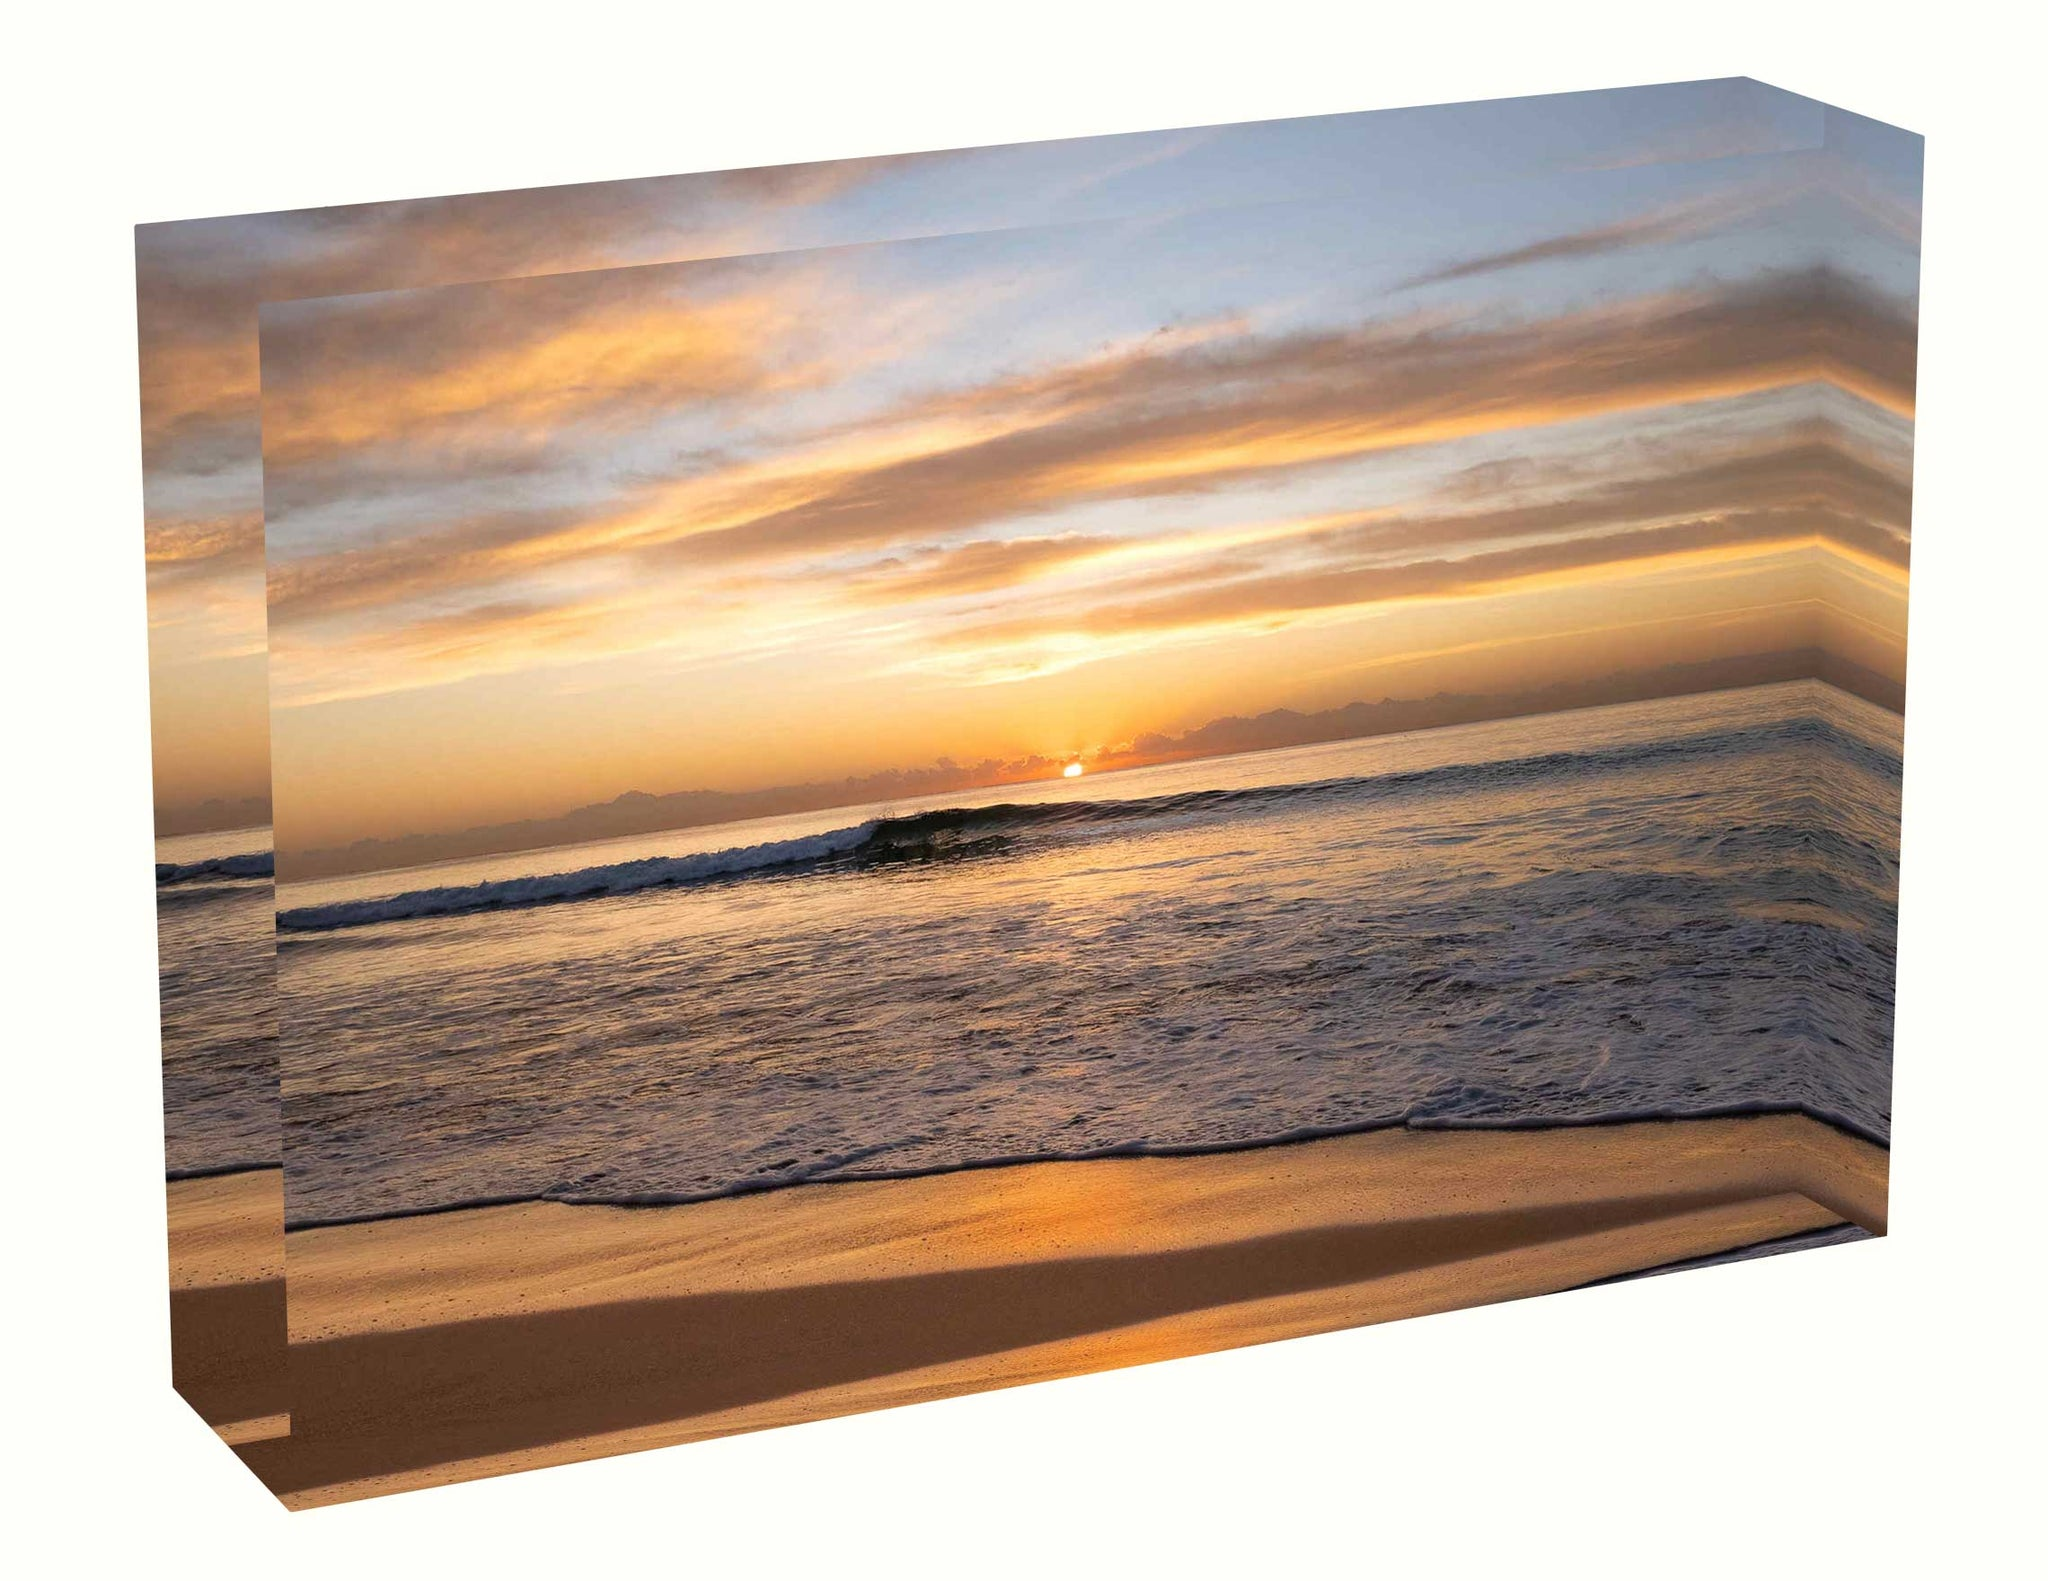 Acrylic block Sunrise photo from the 23rd April 2020 at Manly Beach, Sydney